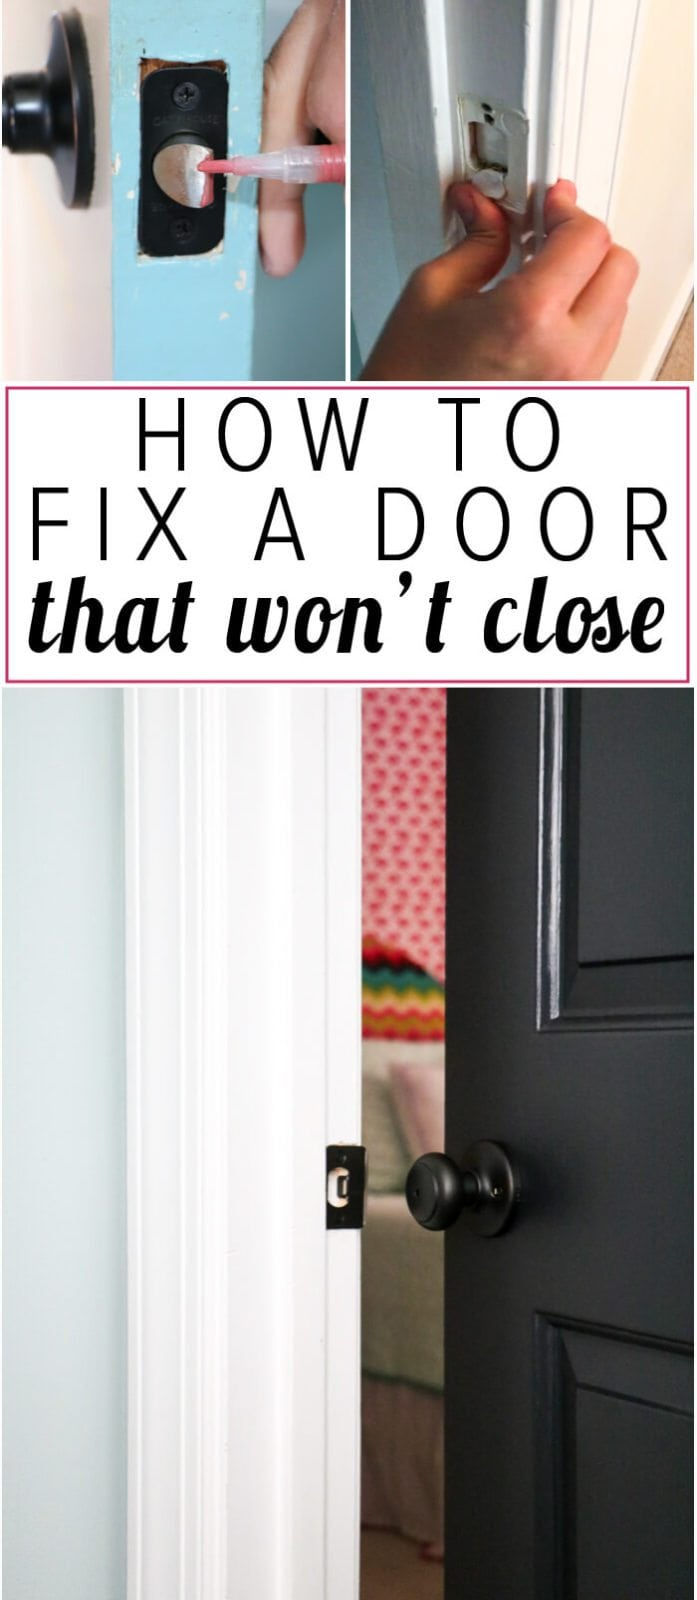 How to Fix a Door That Won't Close